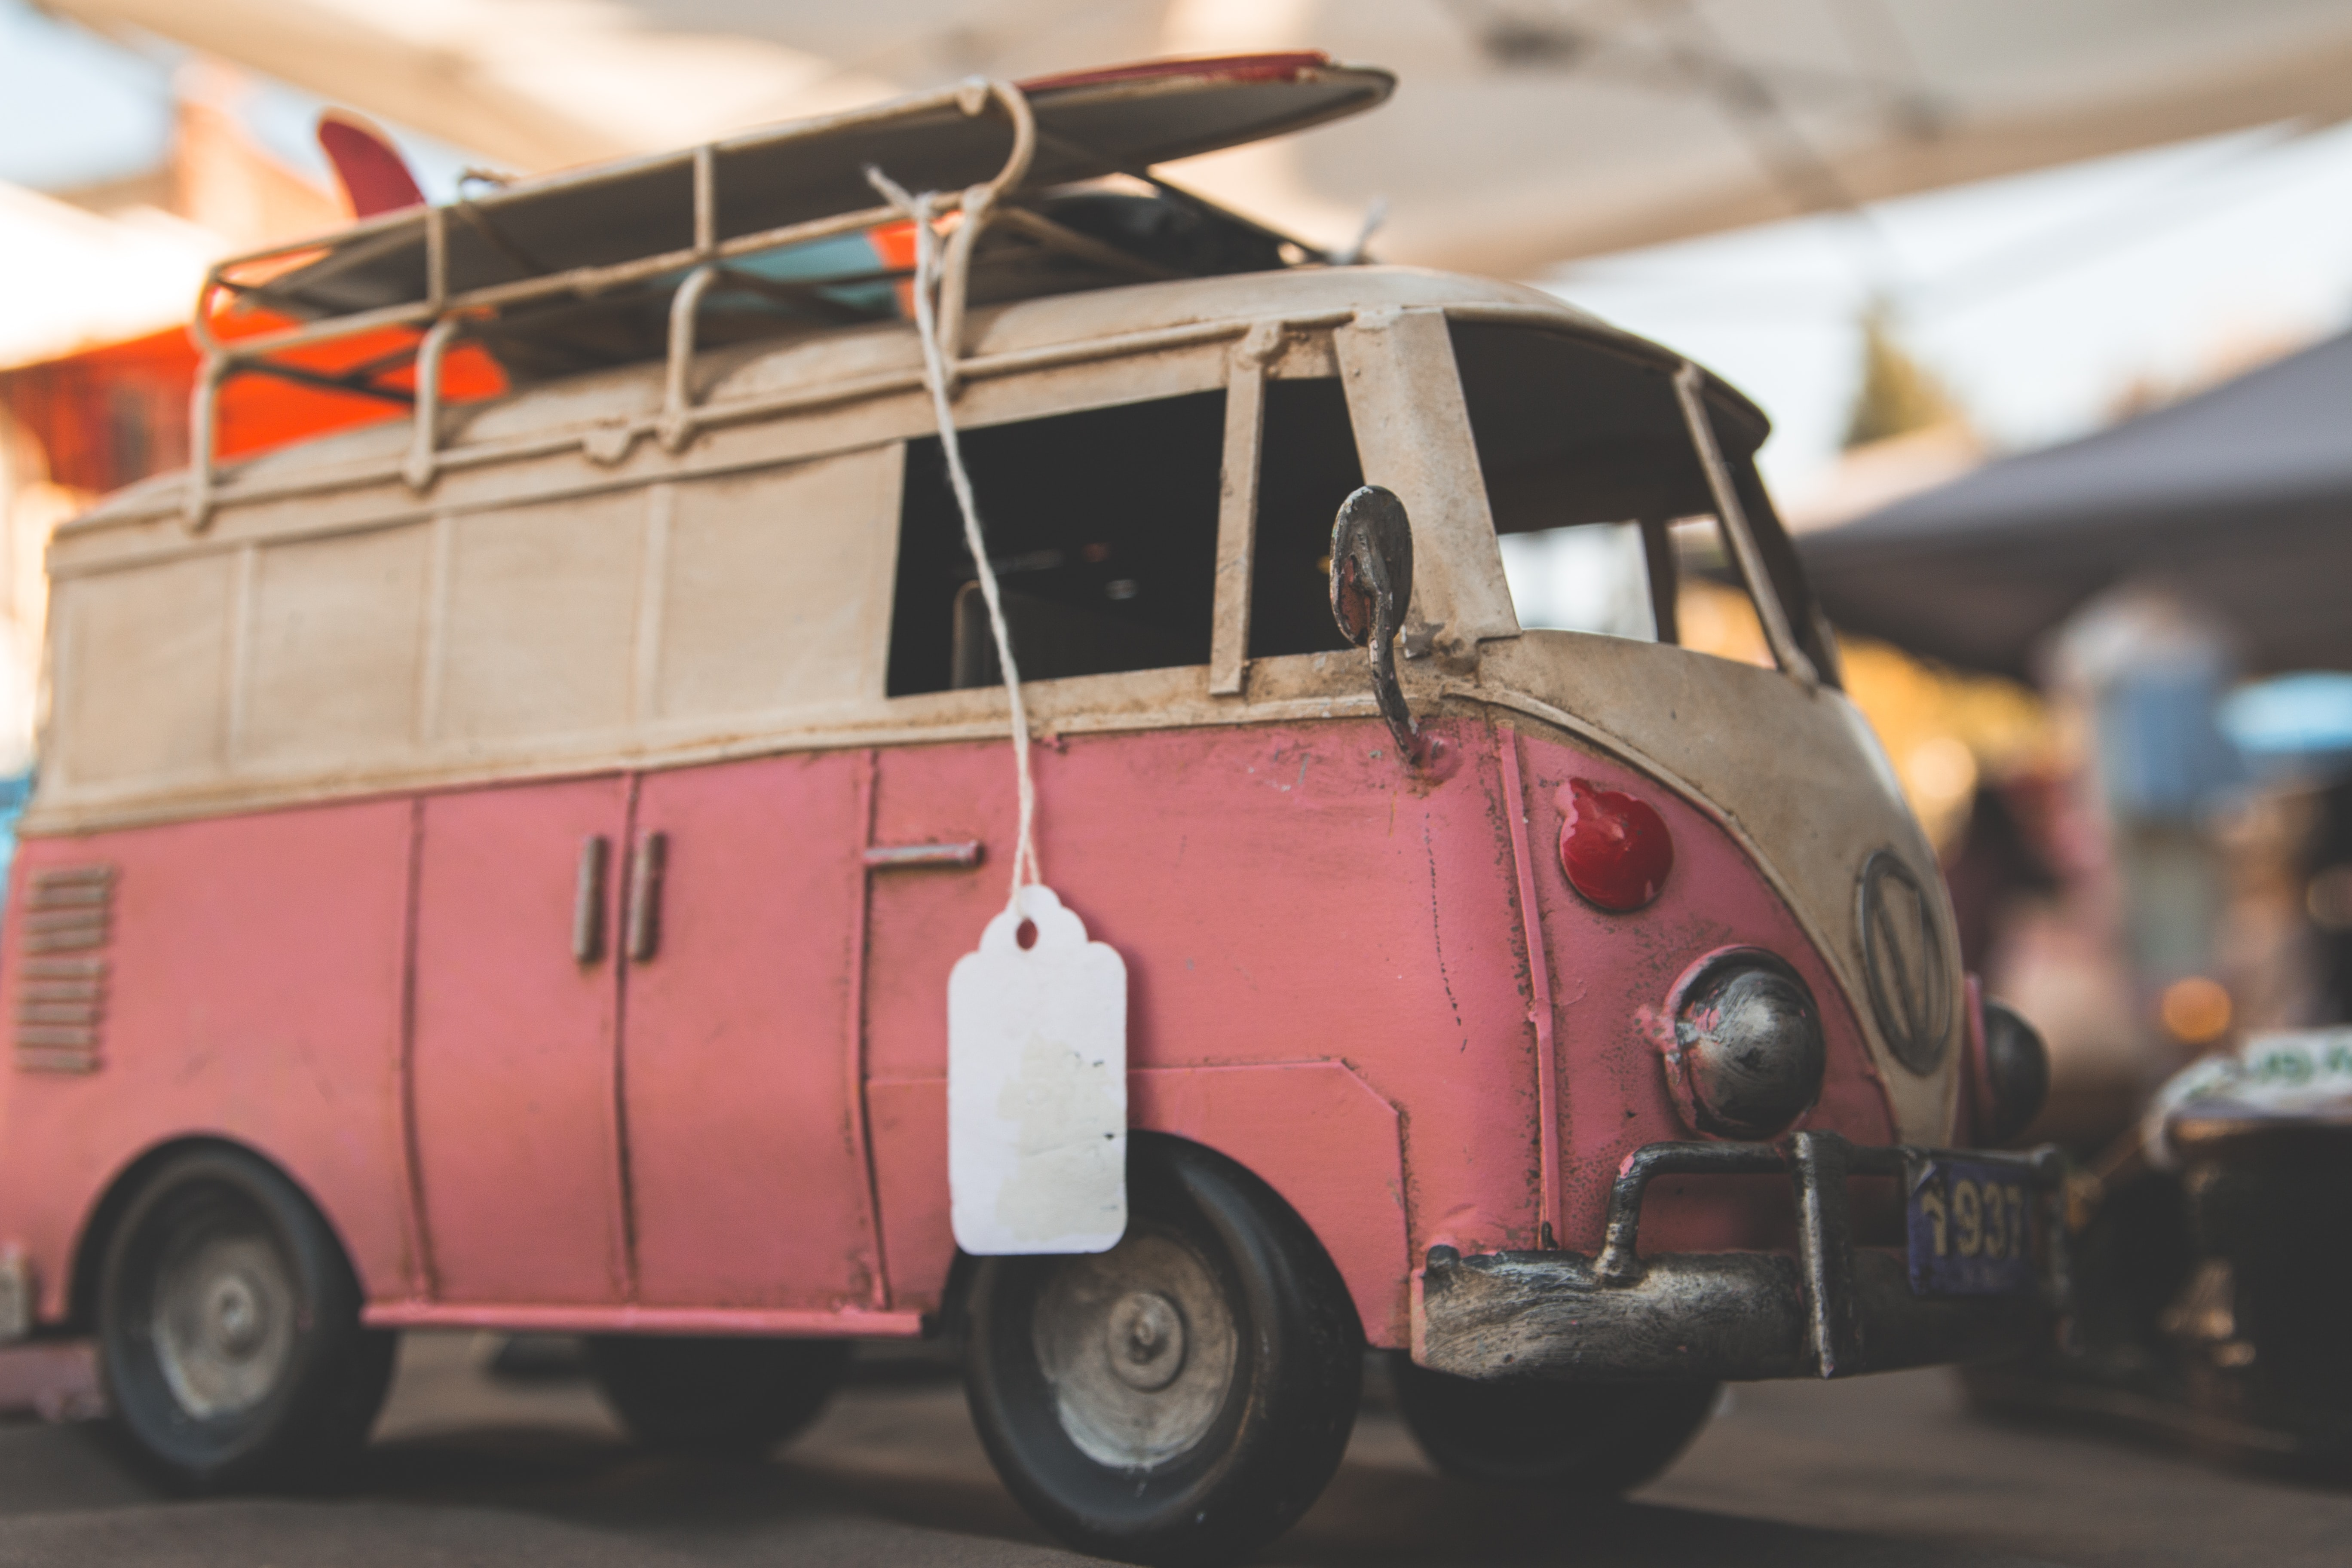 pink and white Volkswagen Transporter van selective focus photography